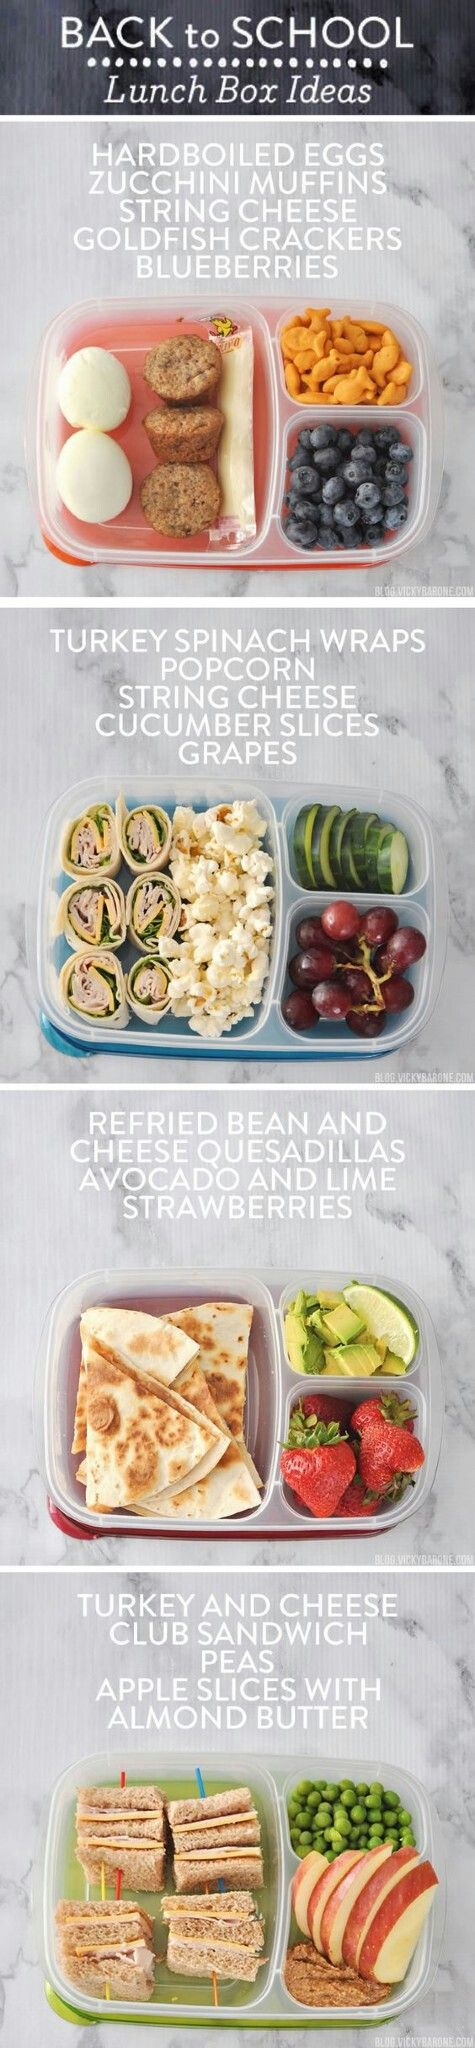 Lunch ideas kensi foods pinterest lunches food and meals forumfinder Choice Image